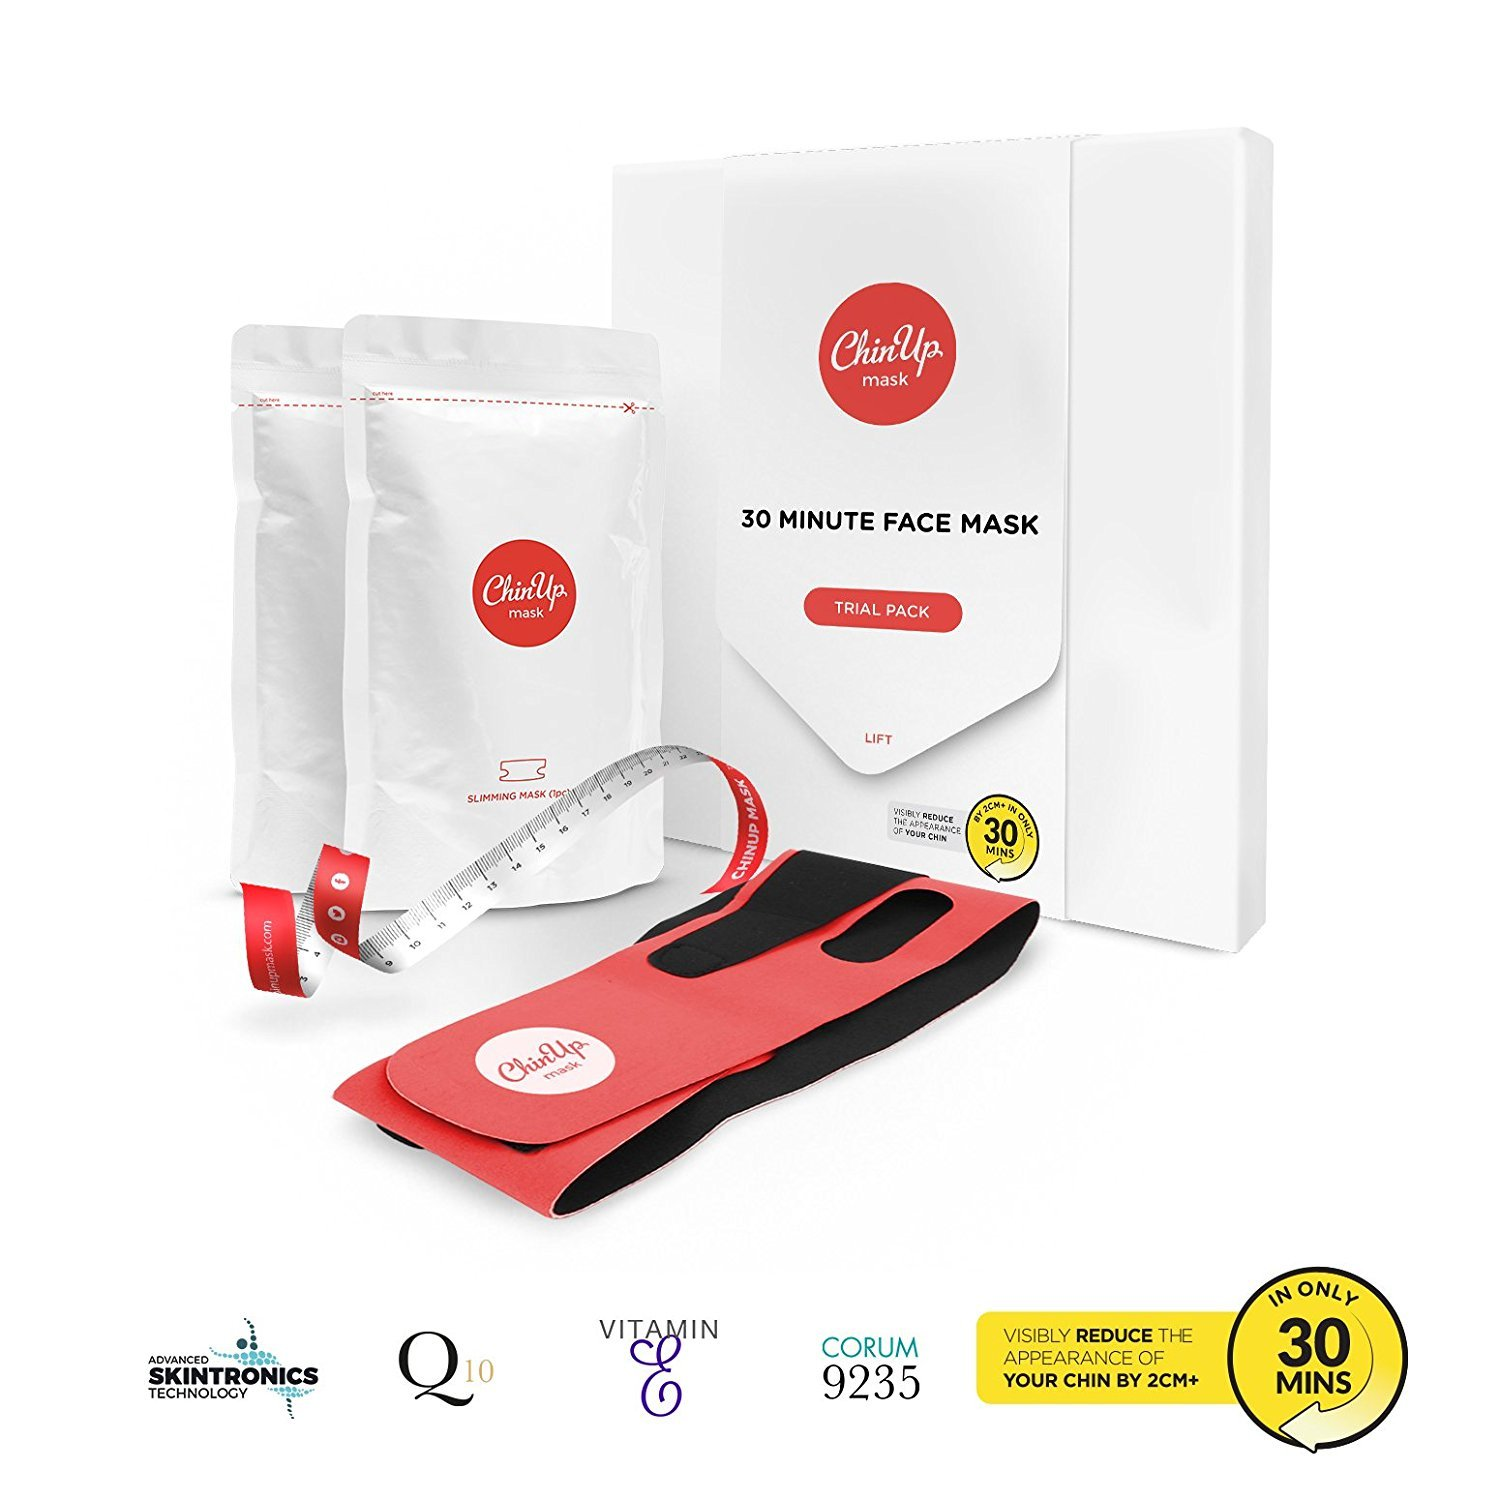 Amazon.com : ChinUp by UpYours- Non-Surgical Face Mask, Reduce the  Appearance of a Double Chin (Trial Pack - 2X Masks) : Beauty